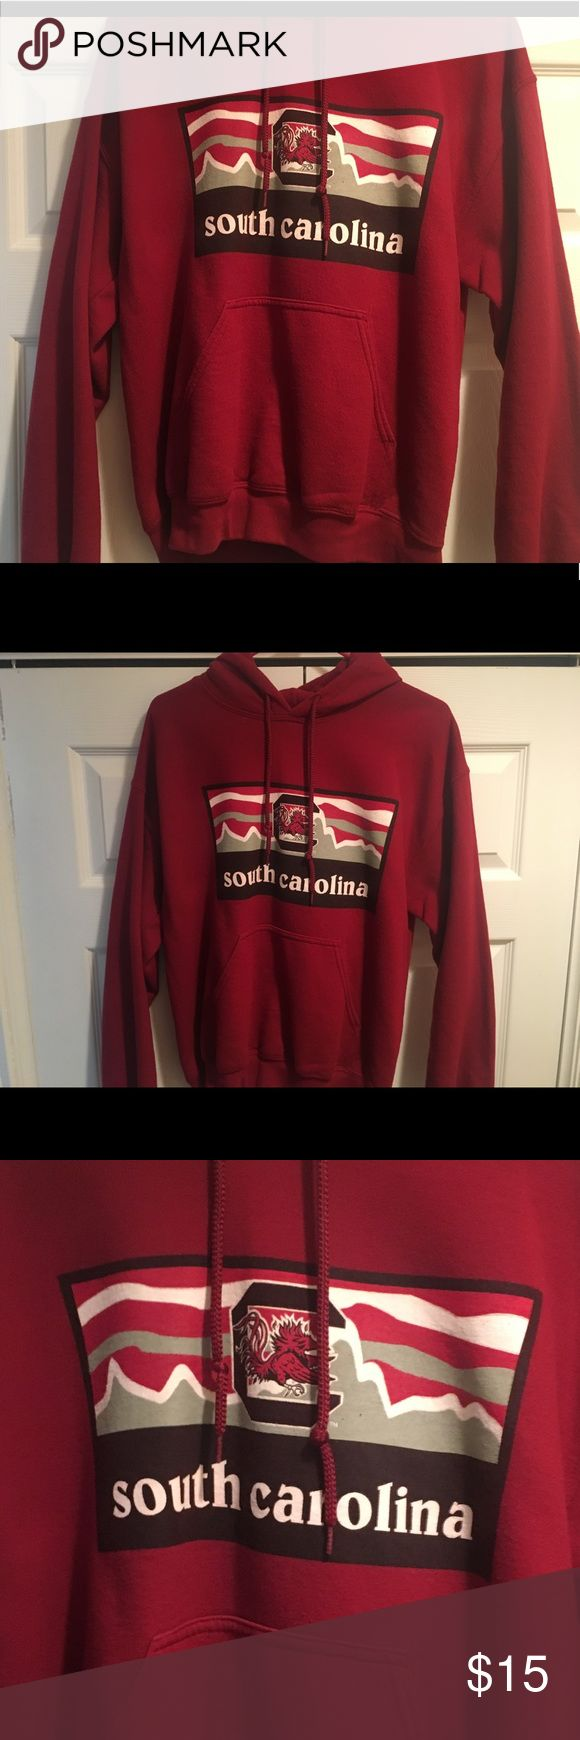 USC Patagonia INSPIRED Logo Hoodie - Worn - Sold at Palmetto Moon but no longer available in ANY Palmetto Moon stores OR online (I work at Palmetto Moon so I know this for sure) - Patagonia INSPIRED logo, not actually a Patagonia hoodie Gildan Tops Sweatshirts & Hoodies